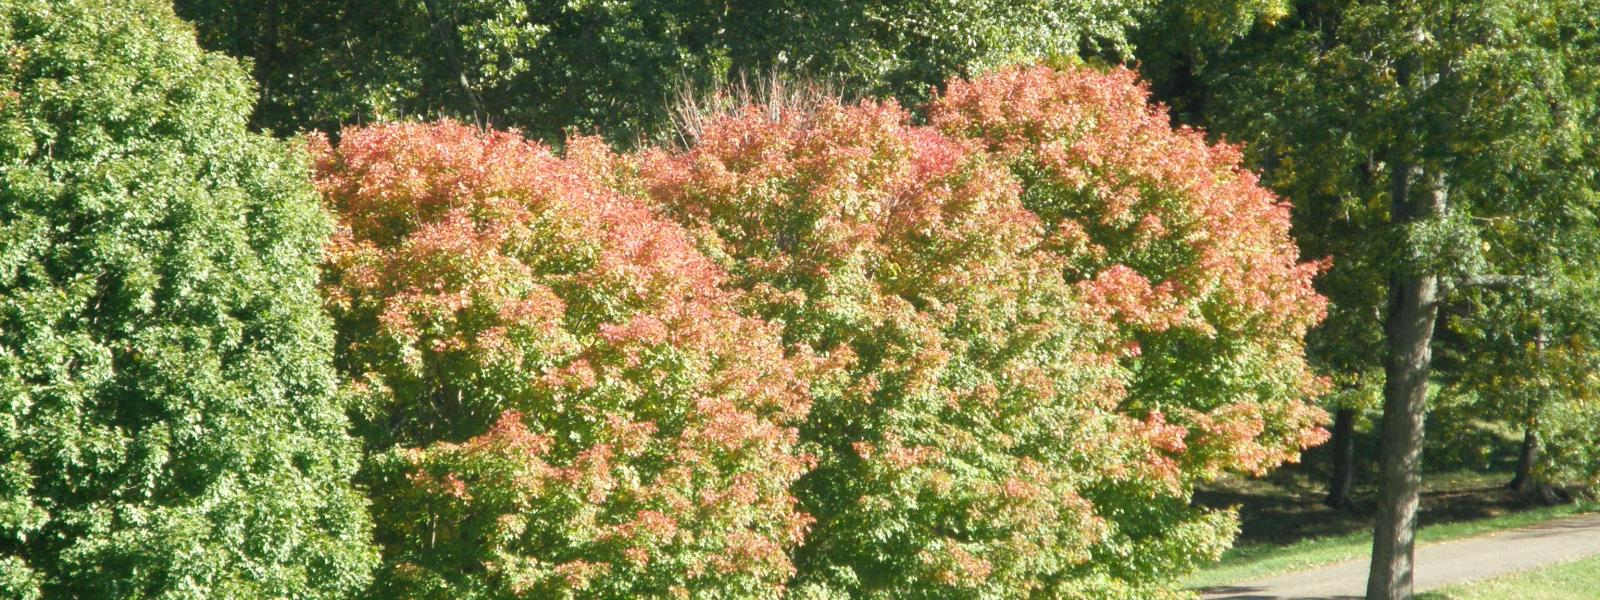 Maple trees just beginning to turn colors Photo Jane Daniels